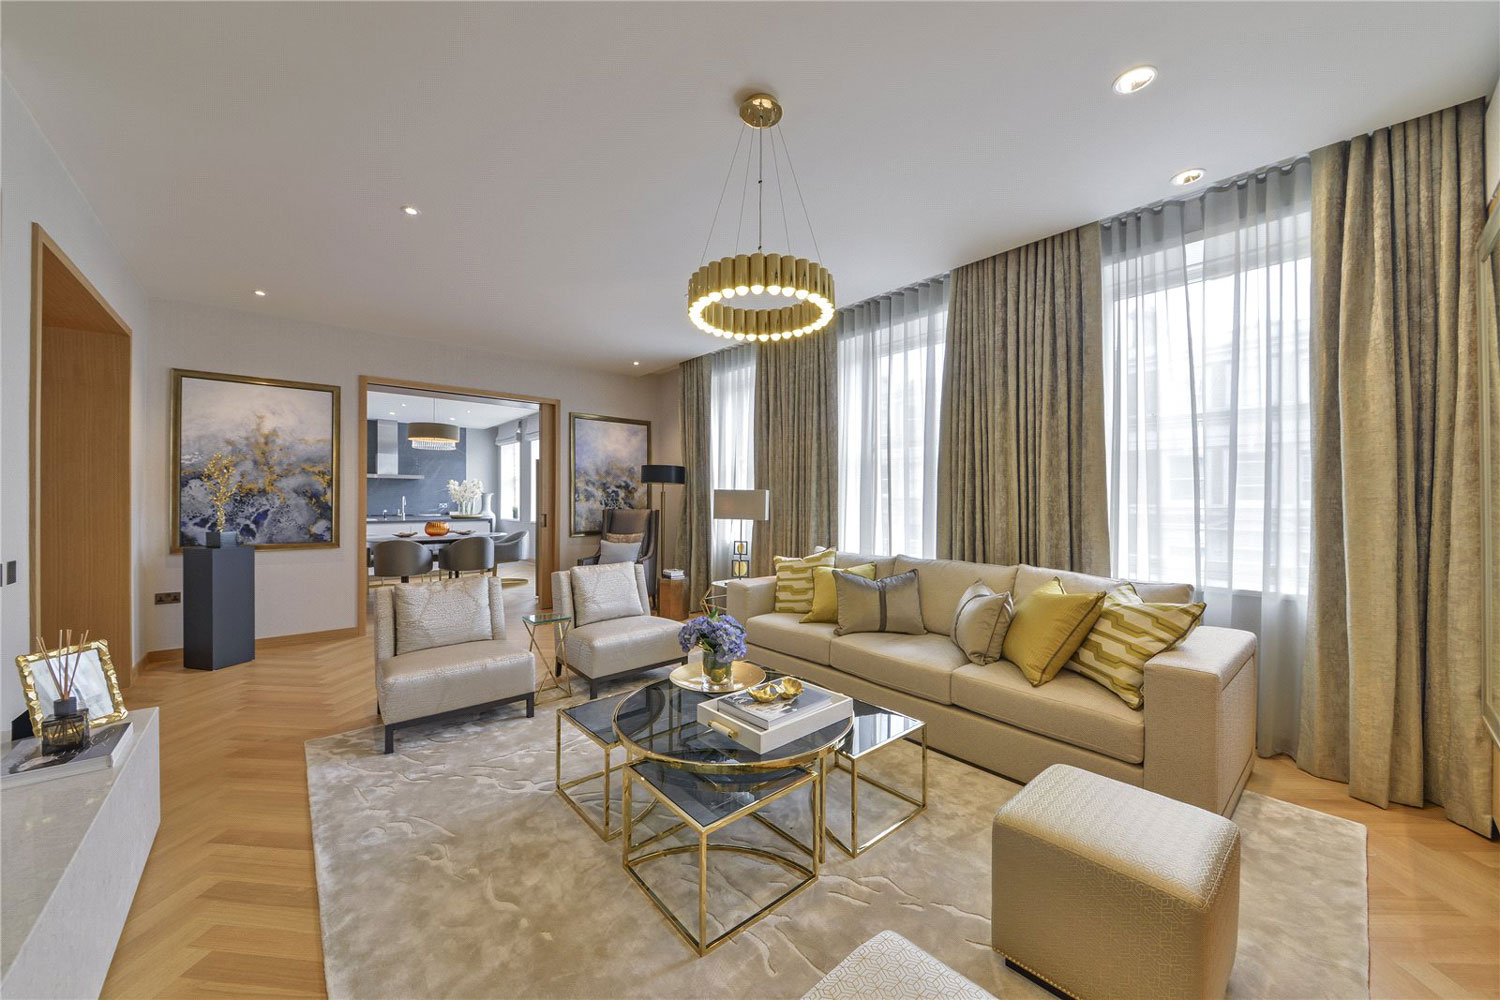 A few tube stops away is this luxurious four-bedroom duplex apartment, which enjoys a prime Central London address at One Kensington Gardens, a premier residential development designed by award-winning architect David Chipperfield.